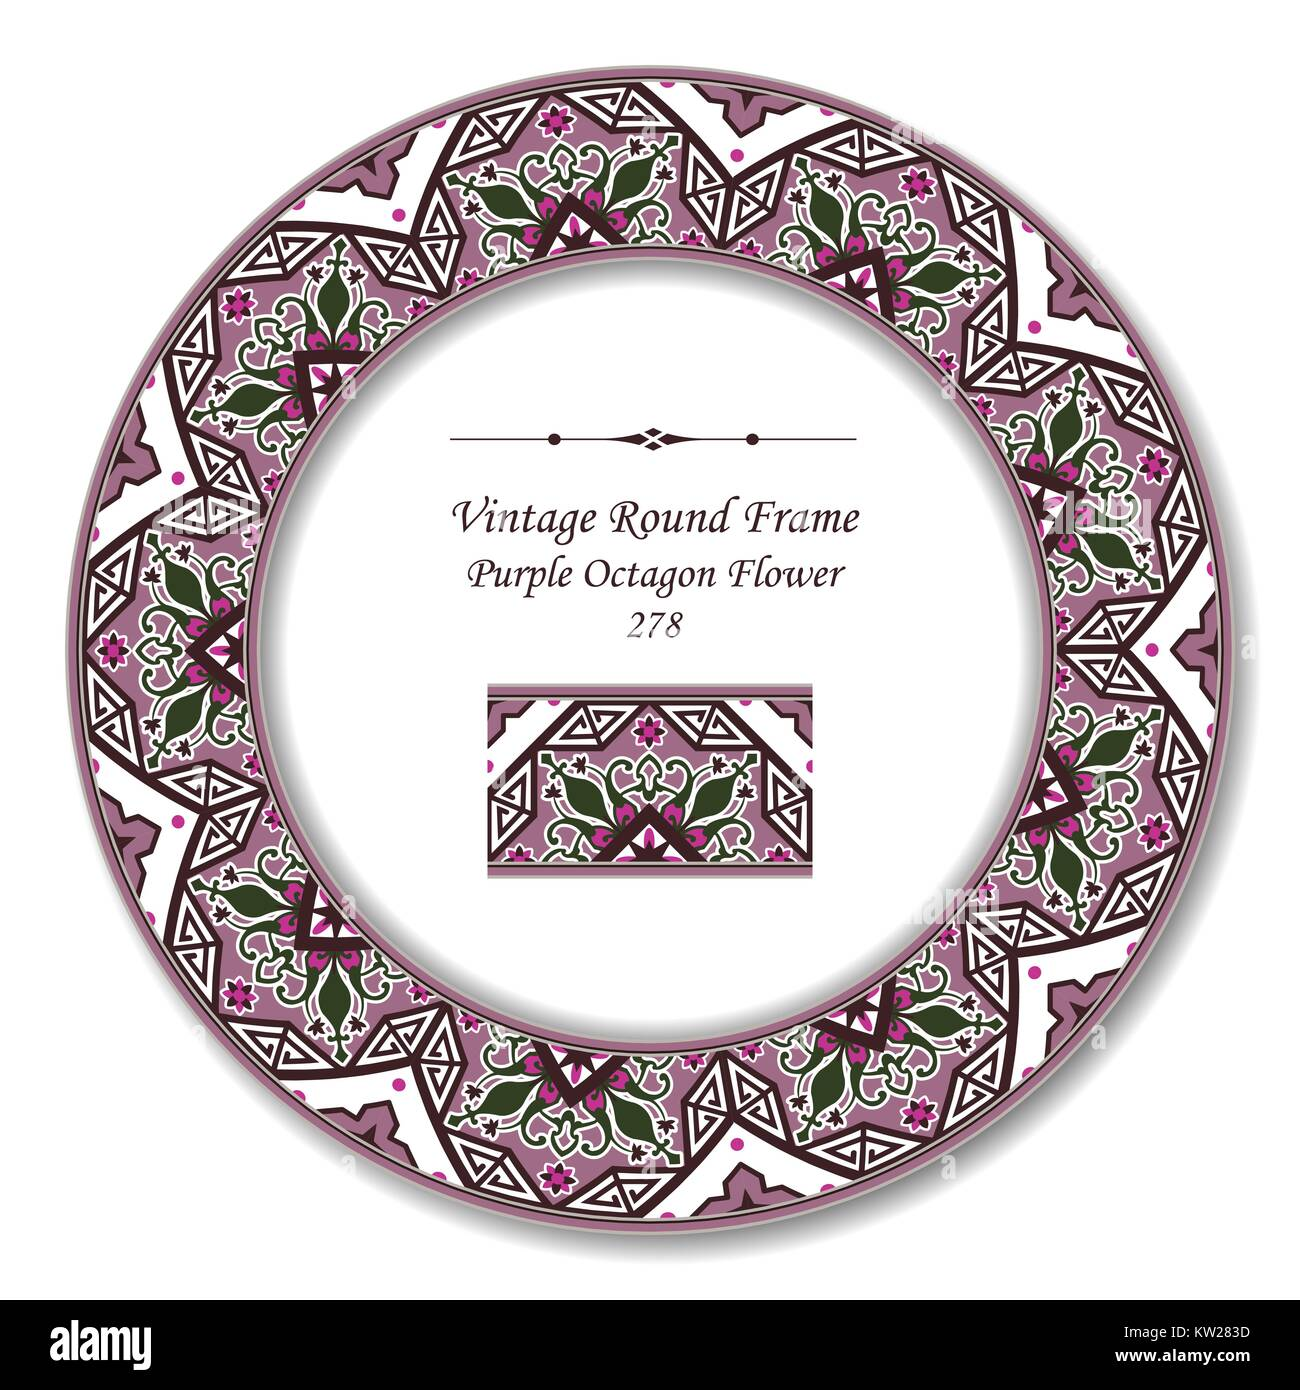 Vintage Round Retro Frame of Retro Botanic Garden Purple Octagon Flower Stock Vector